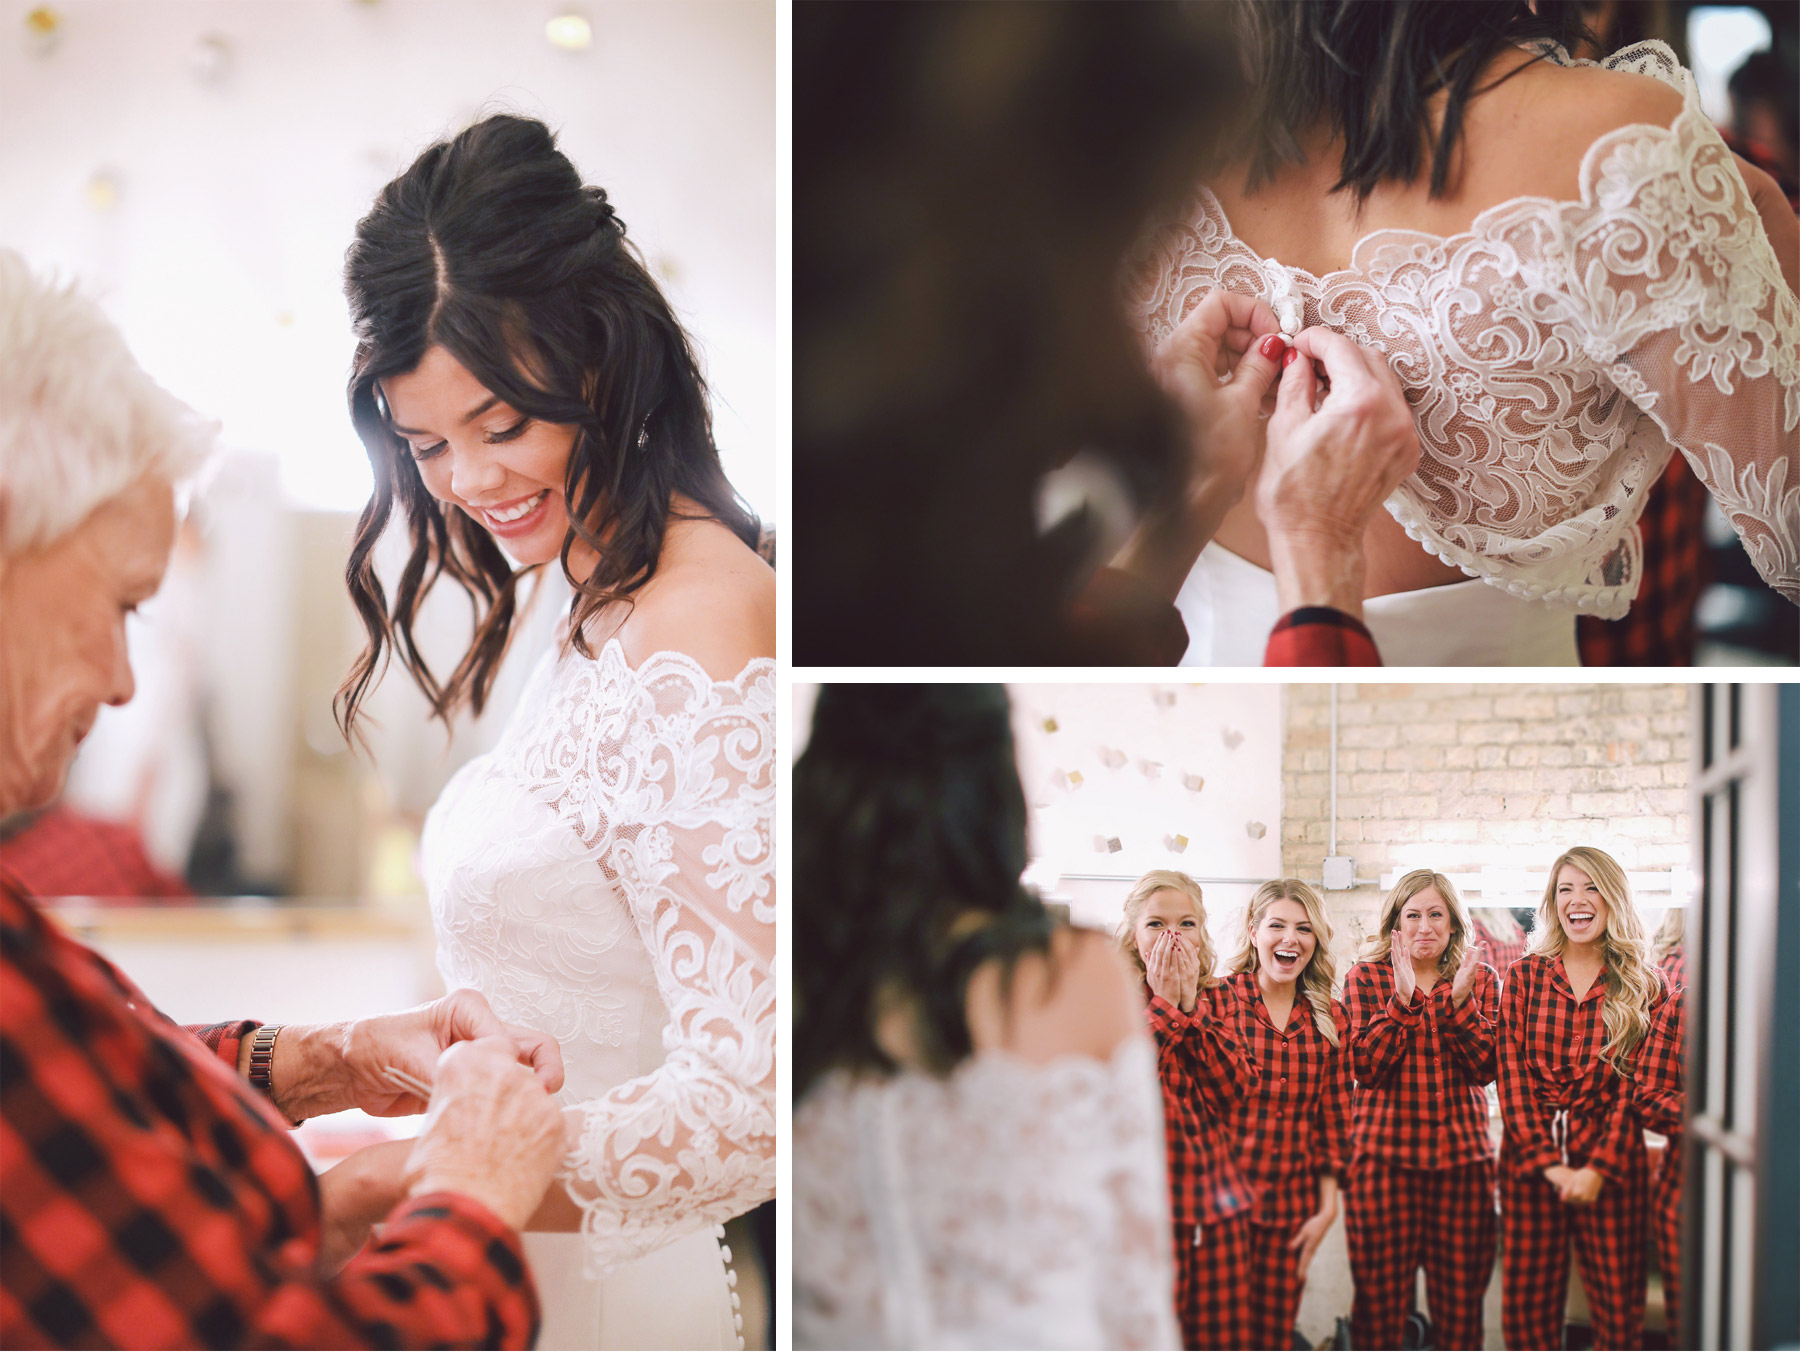 01-Minneapolis-Minnesota-Wedding-Photographer-by-Vick-Photography-Winter-Wedding-Aria-Flannel-Getting-Ready-Bride-Bridesmaids-Maggie-and-Matt.jpg